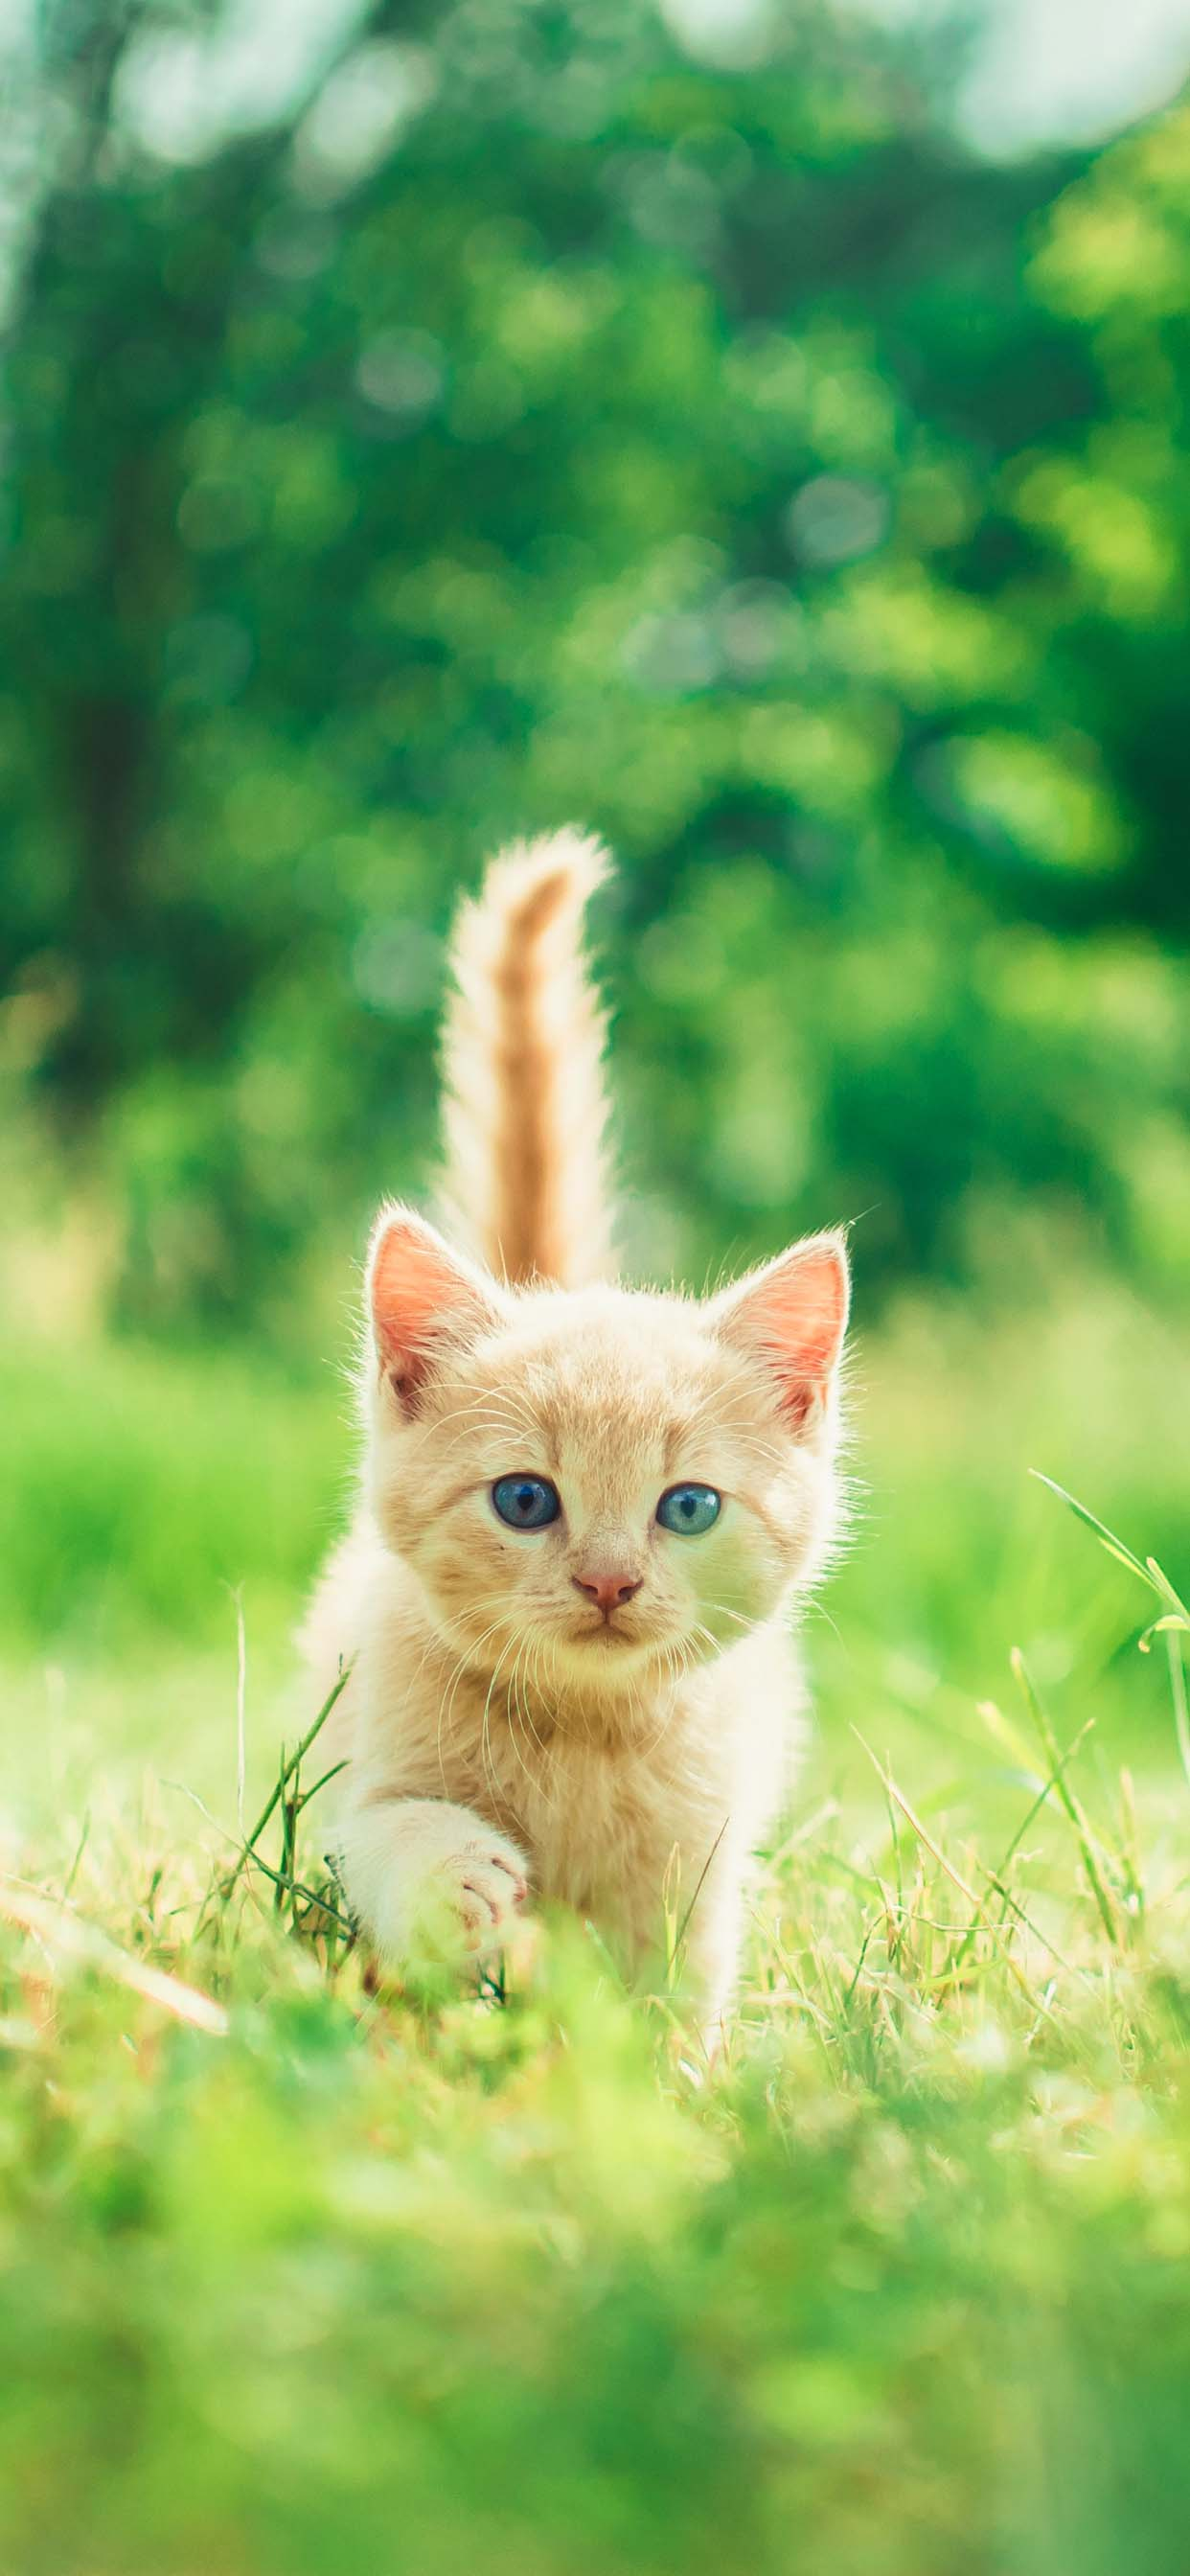 Cat wallpapers for iPhone XS Max - Lively happy kitten exploring the world